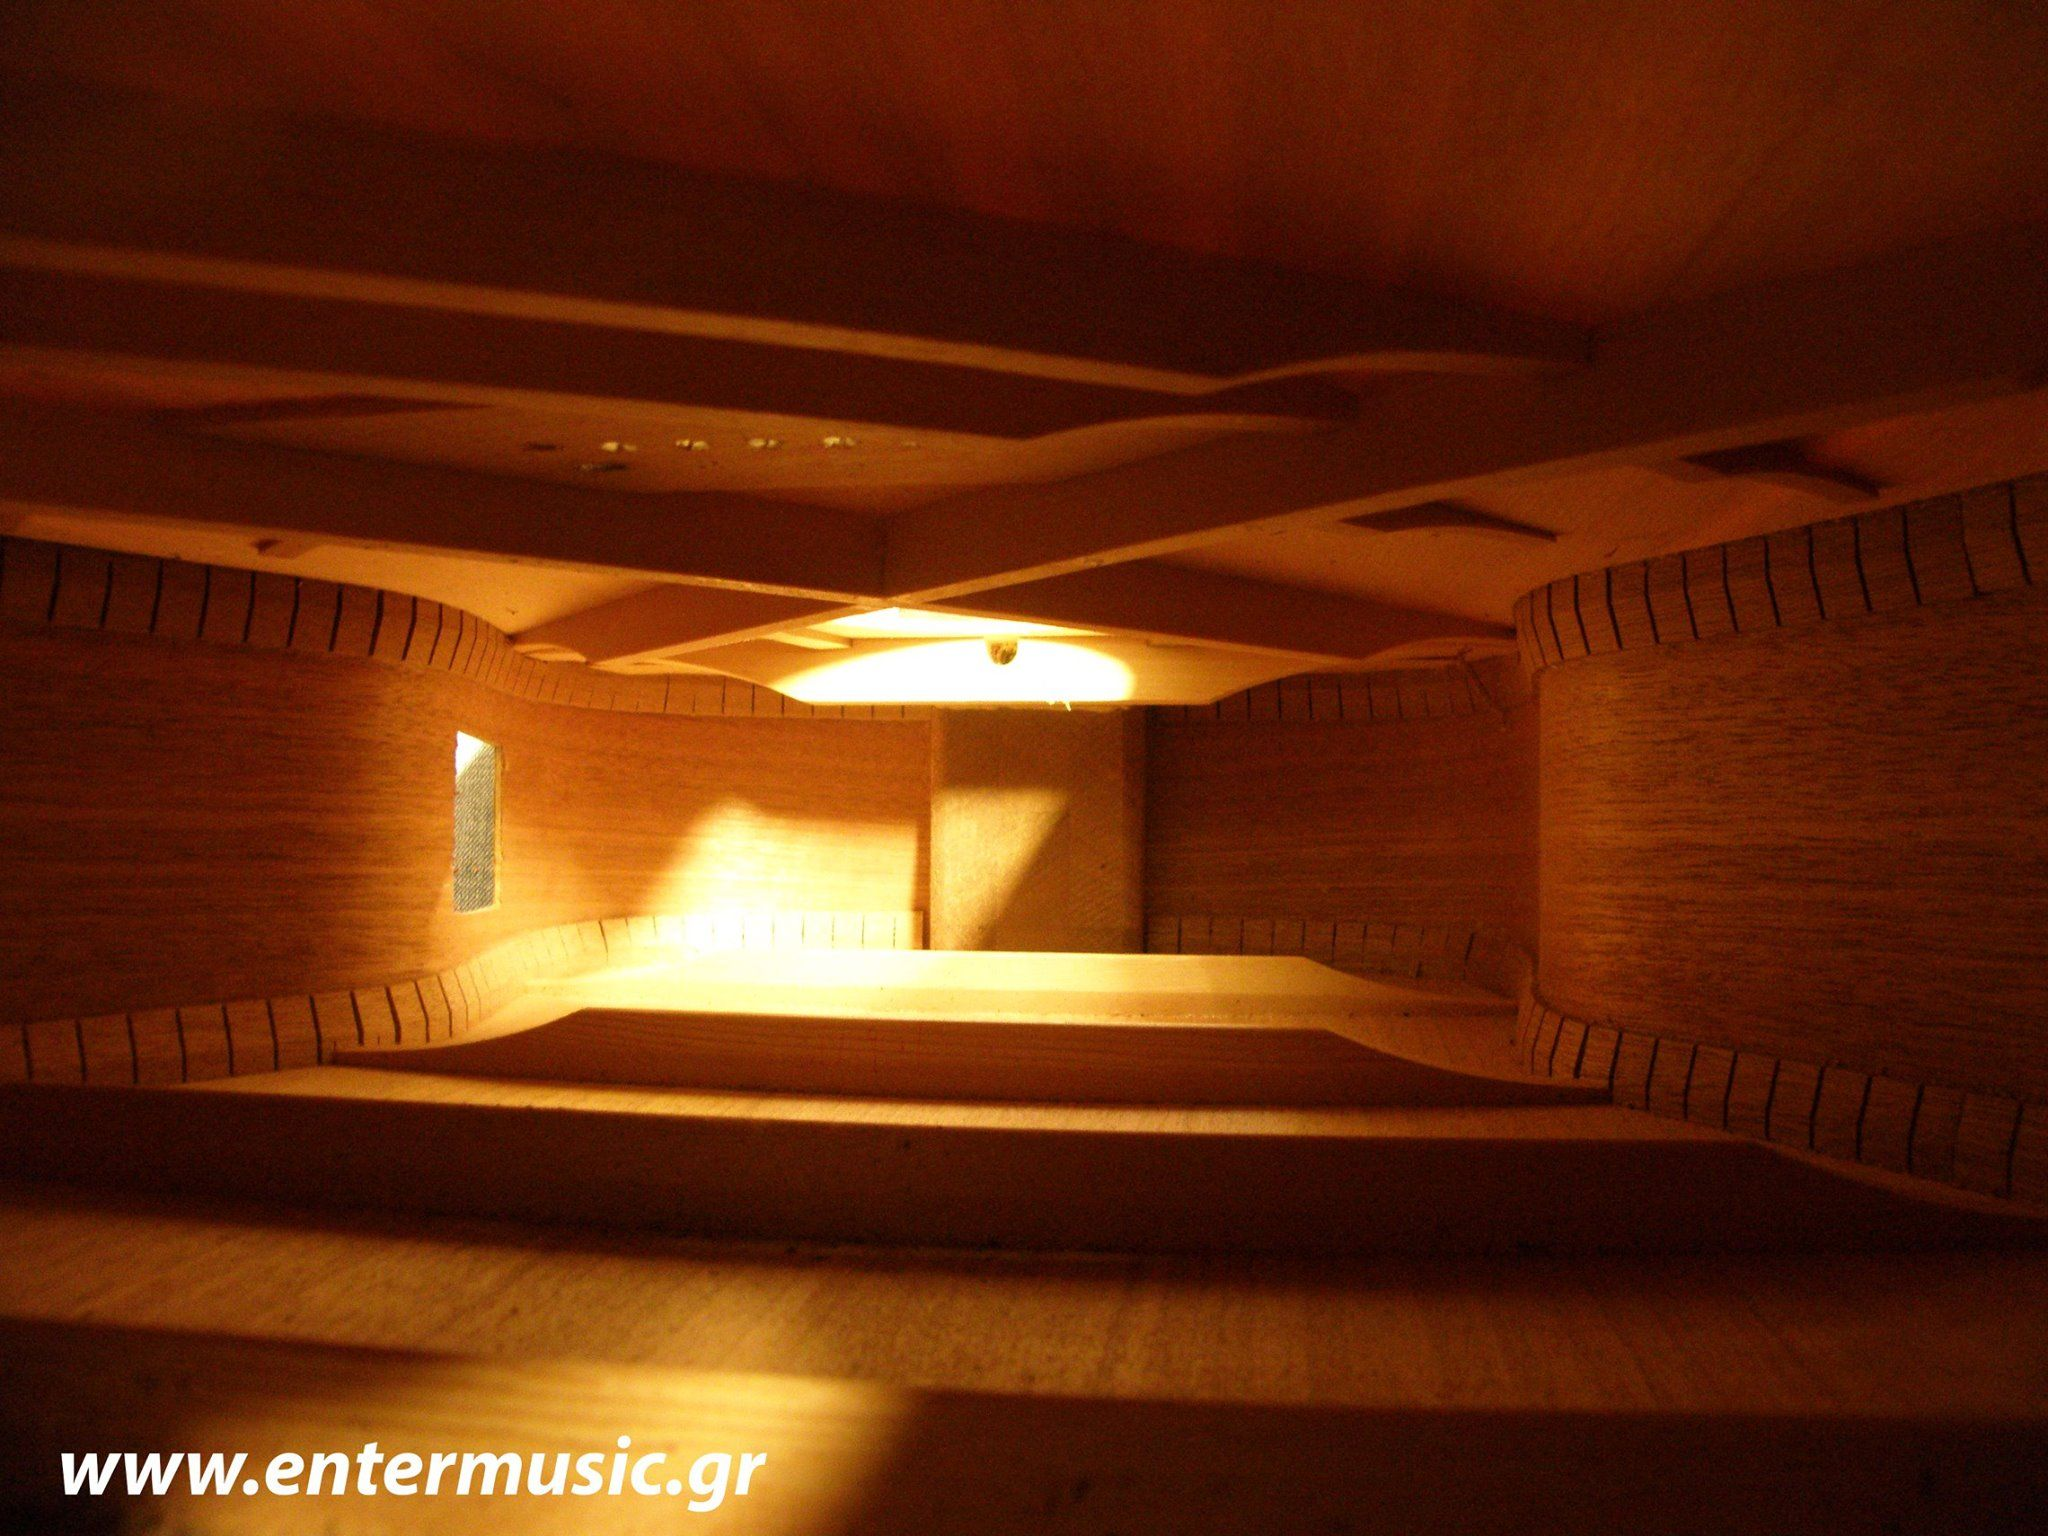 this is not a room this is the inside of an acoustic guitar